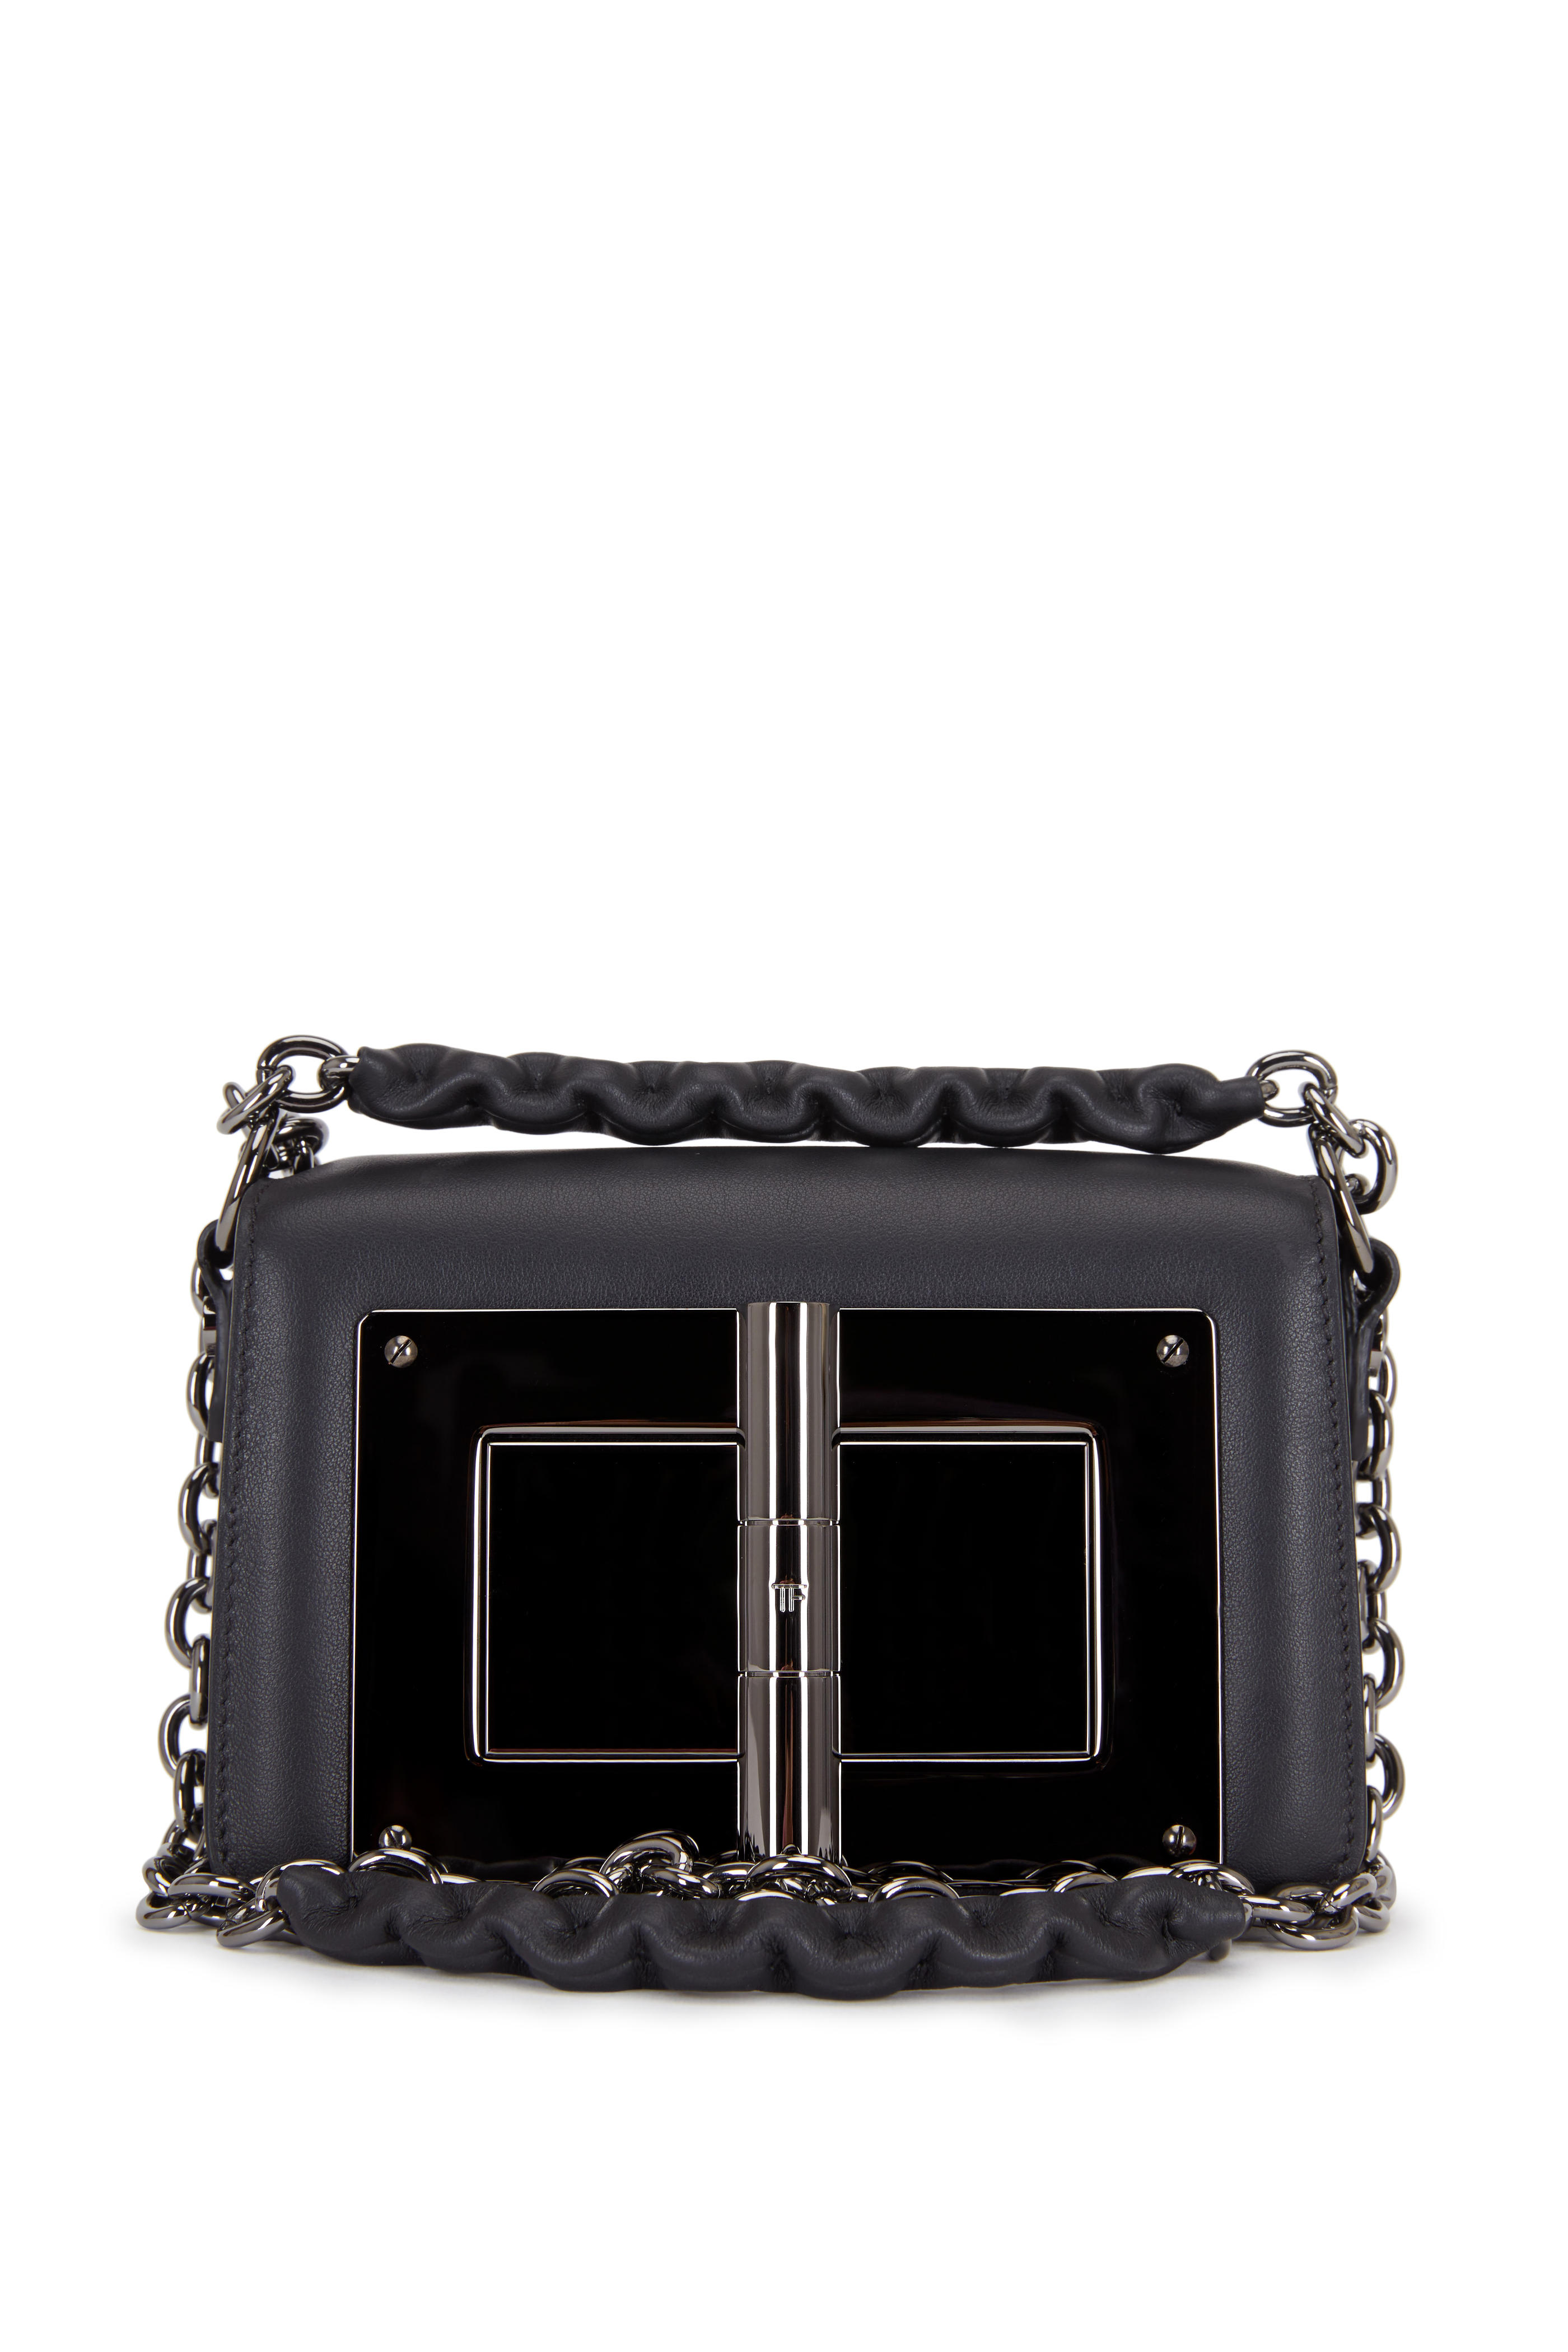 2f99c6739a29a Tom Ford - Natalia Black Leather Small Chain Bag | Mitchell Stores